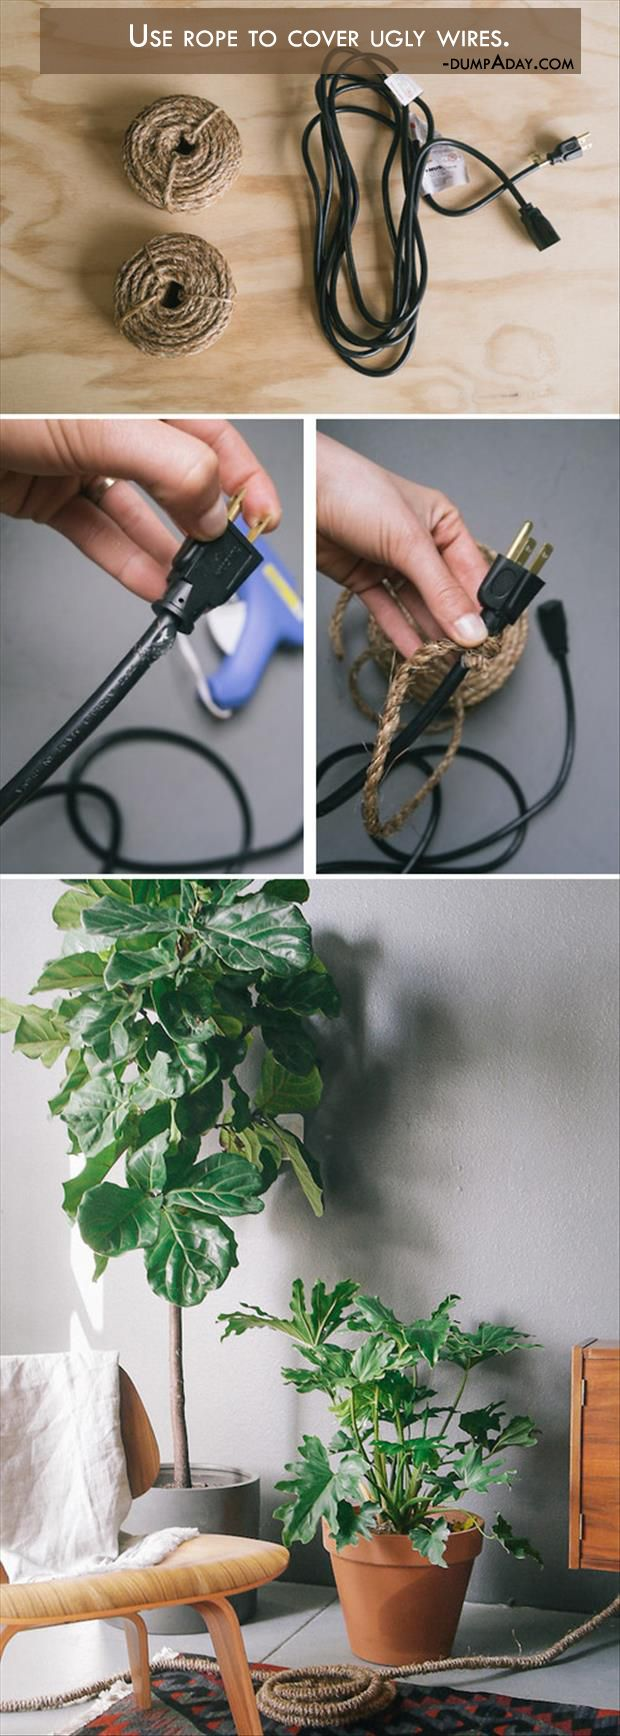 Wrap the cords in twine